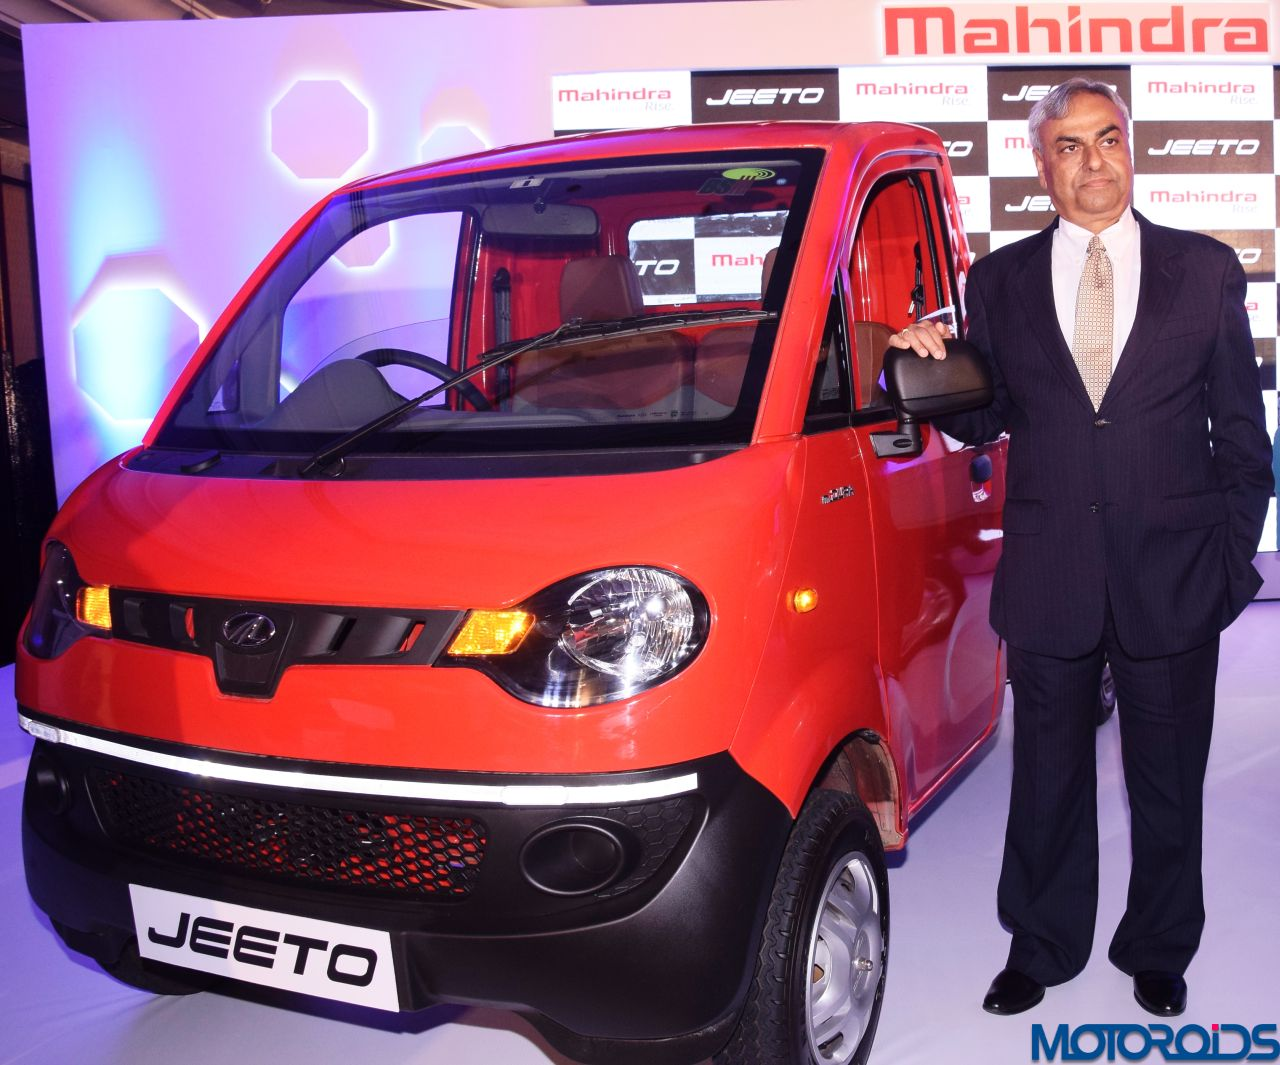 new car launches june 2015Car Sales June 2015 Mahindras Auto Sector reports negative